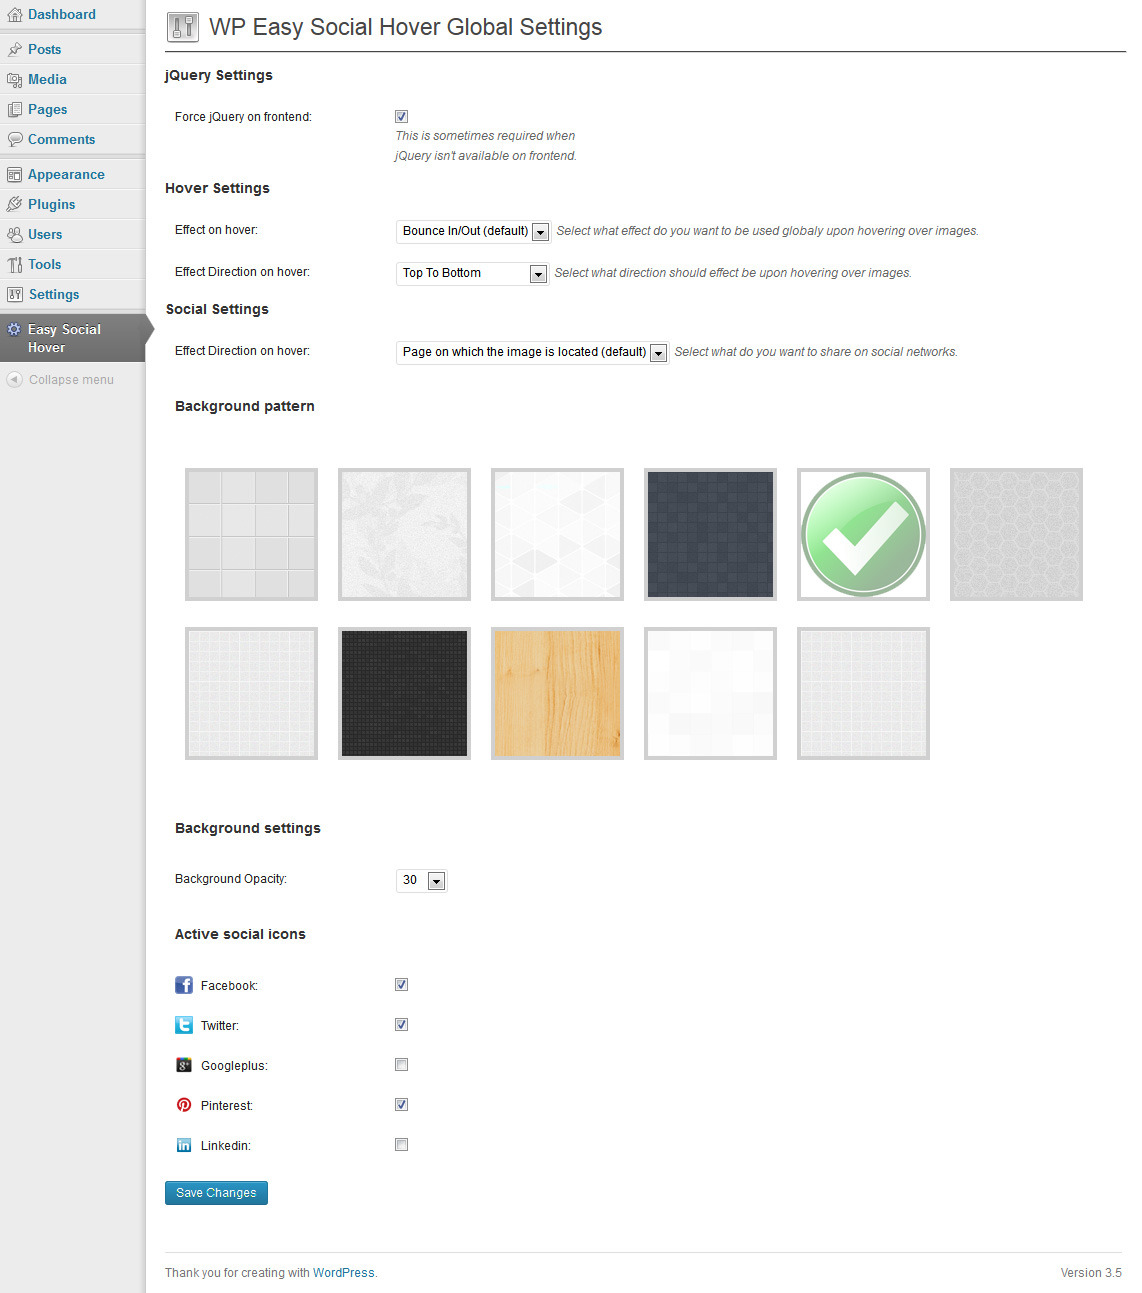 WP Easy Social Hover